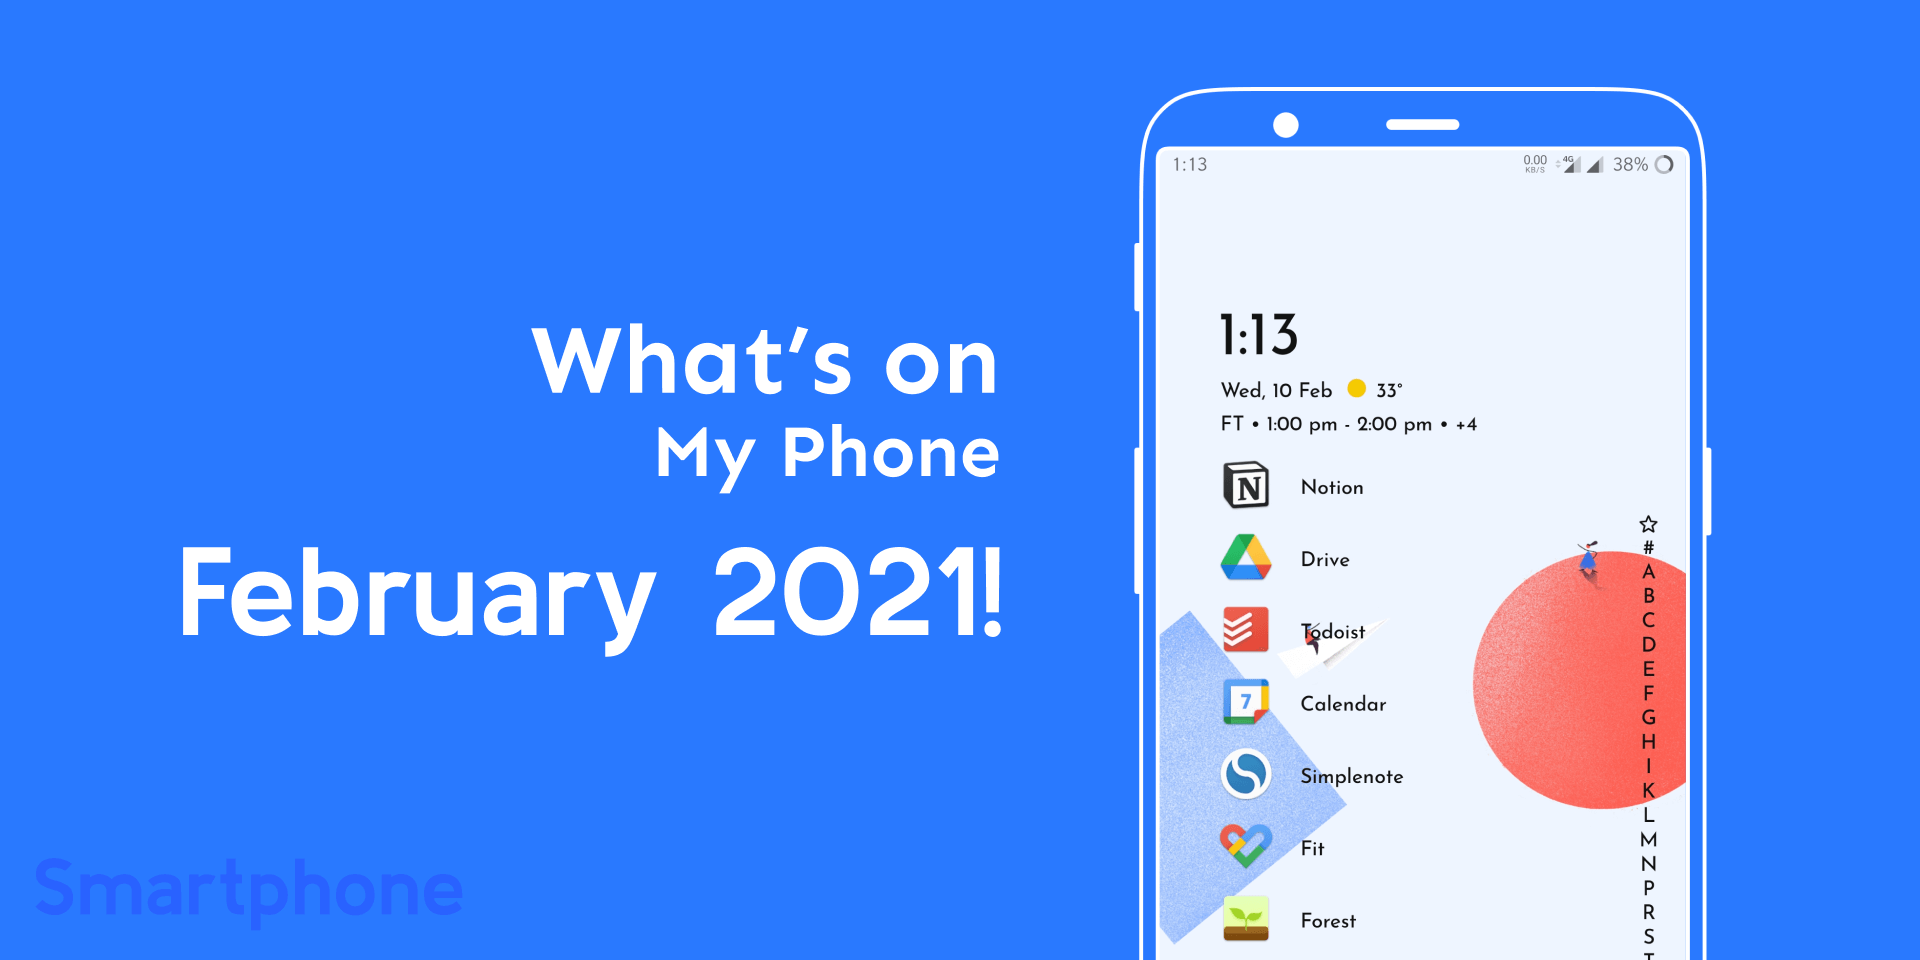 What's on My Phone February 2021!